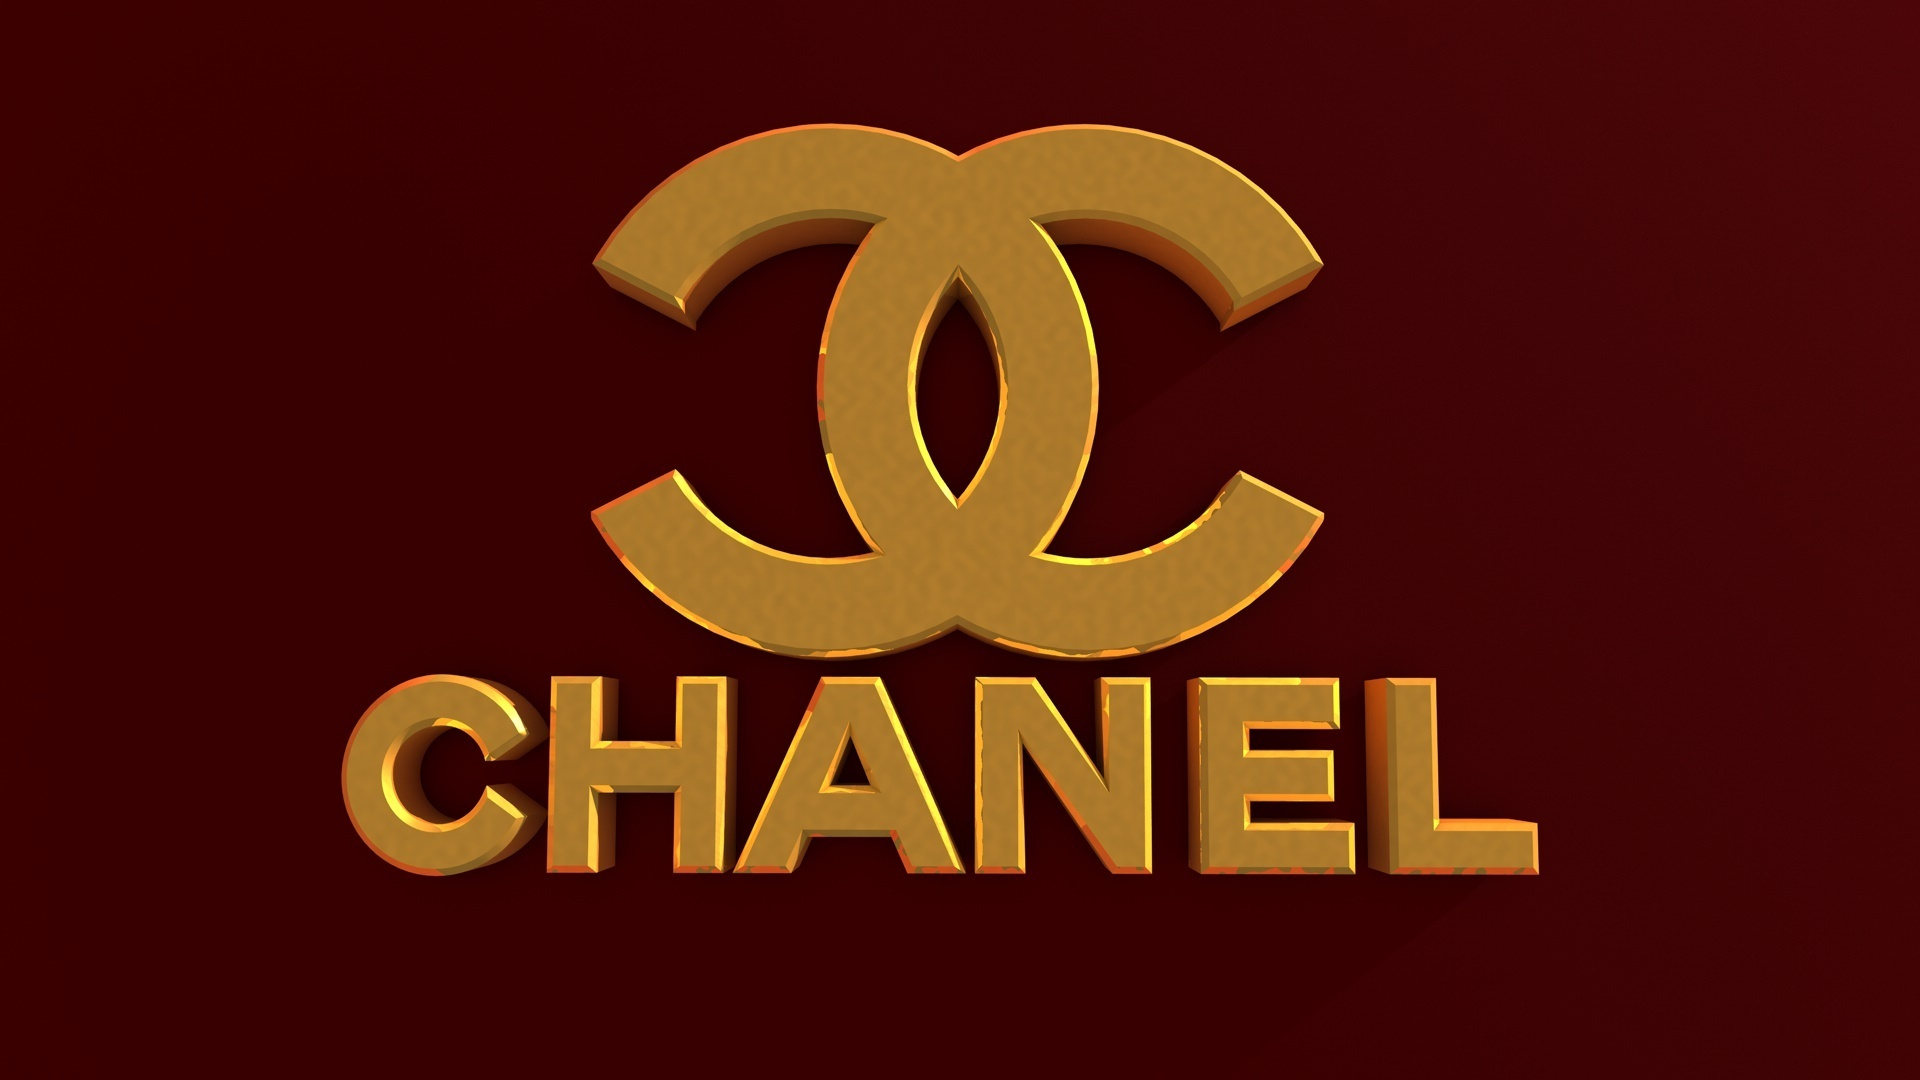 logo chanel wallpaper hd #1920